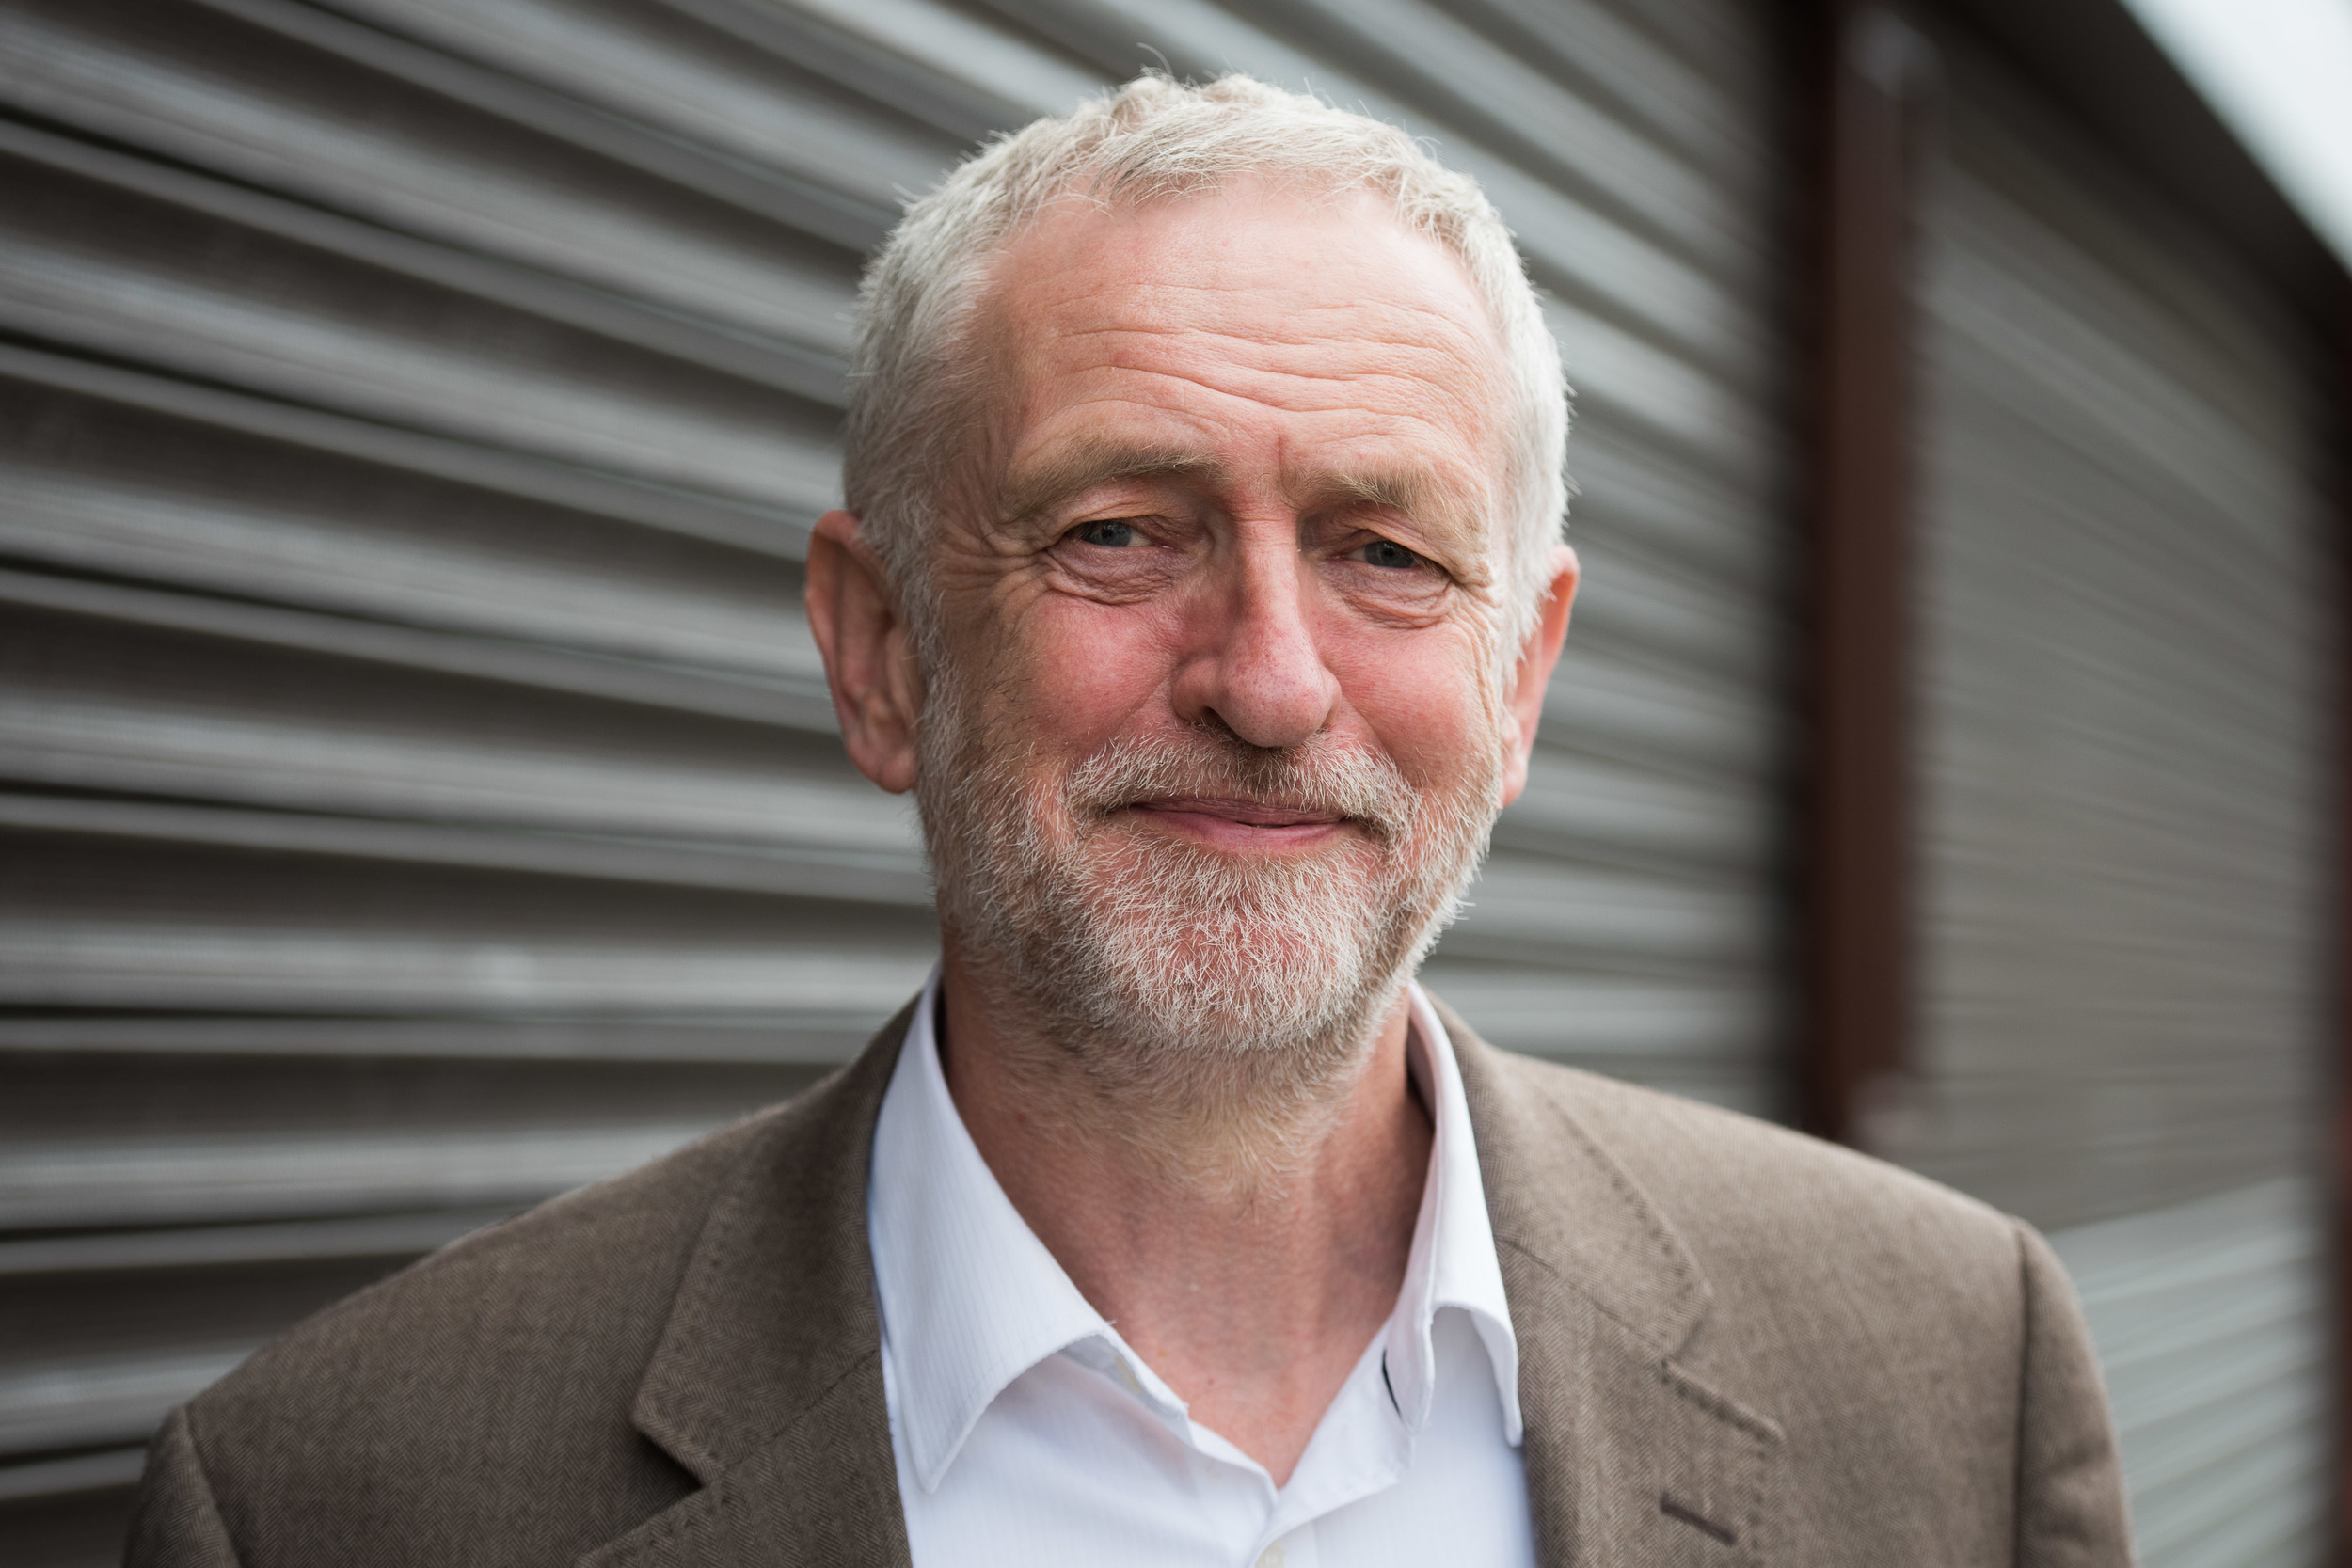 Jeremy Corbyn poses for a portrait in Maesteg ahead of the Welsh Assembly elections.